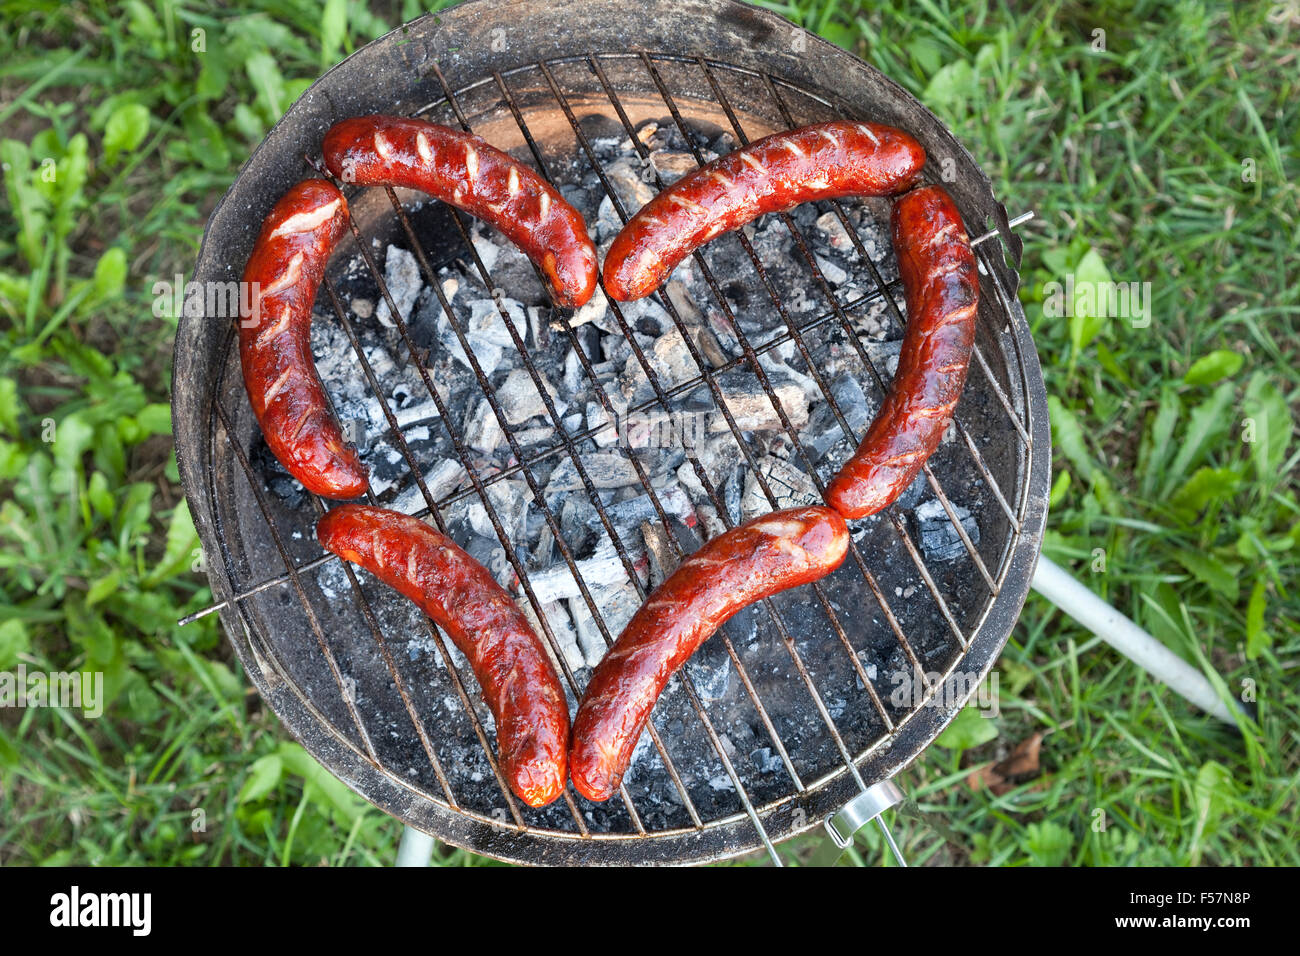 Sur le gril saucisses disposés en forme de coeur Photo Stock